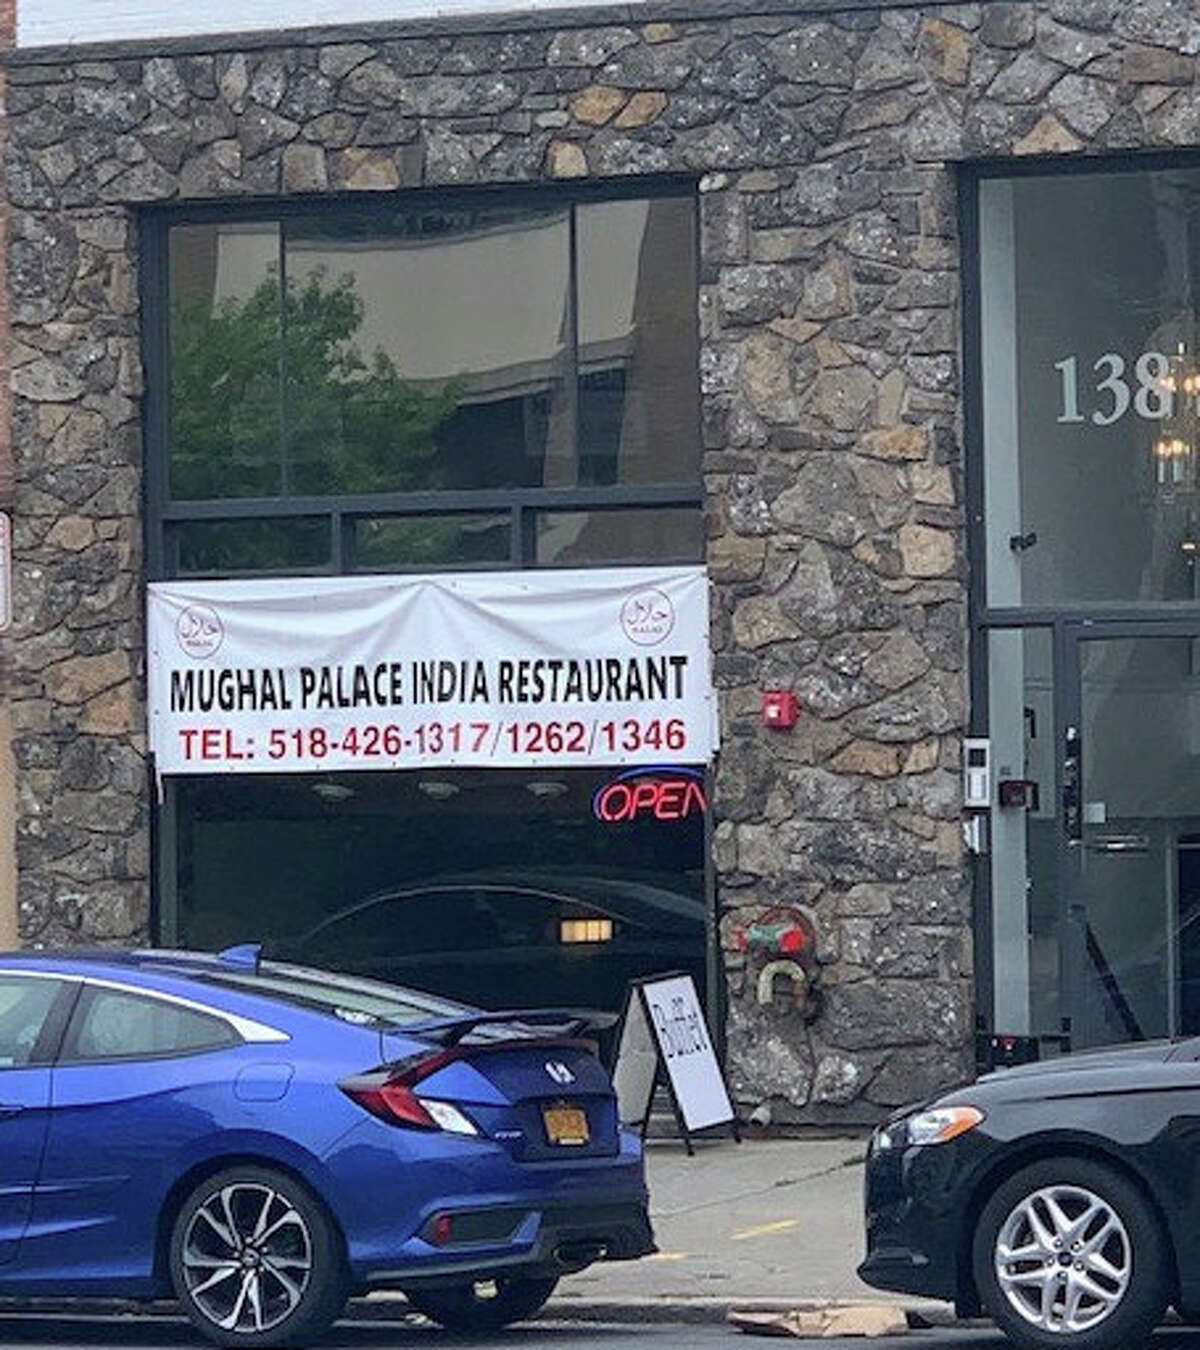 The Mughal Palace, an Indian restaurant named after an empire that stretched across much of South Asia from the 16th to 19th centuries, is now open at 138 Washington Ave., Albany, opposite the Albany Institute of History & Art.